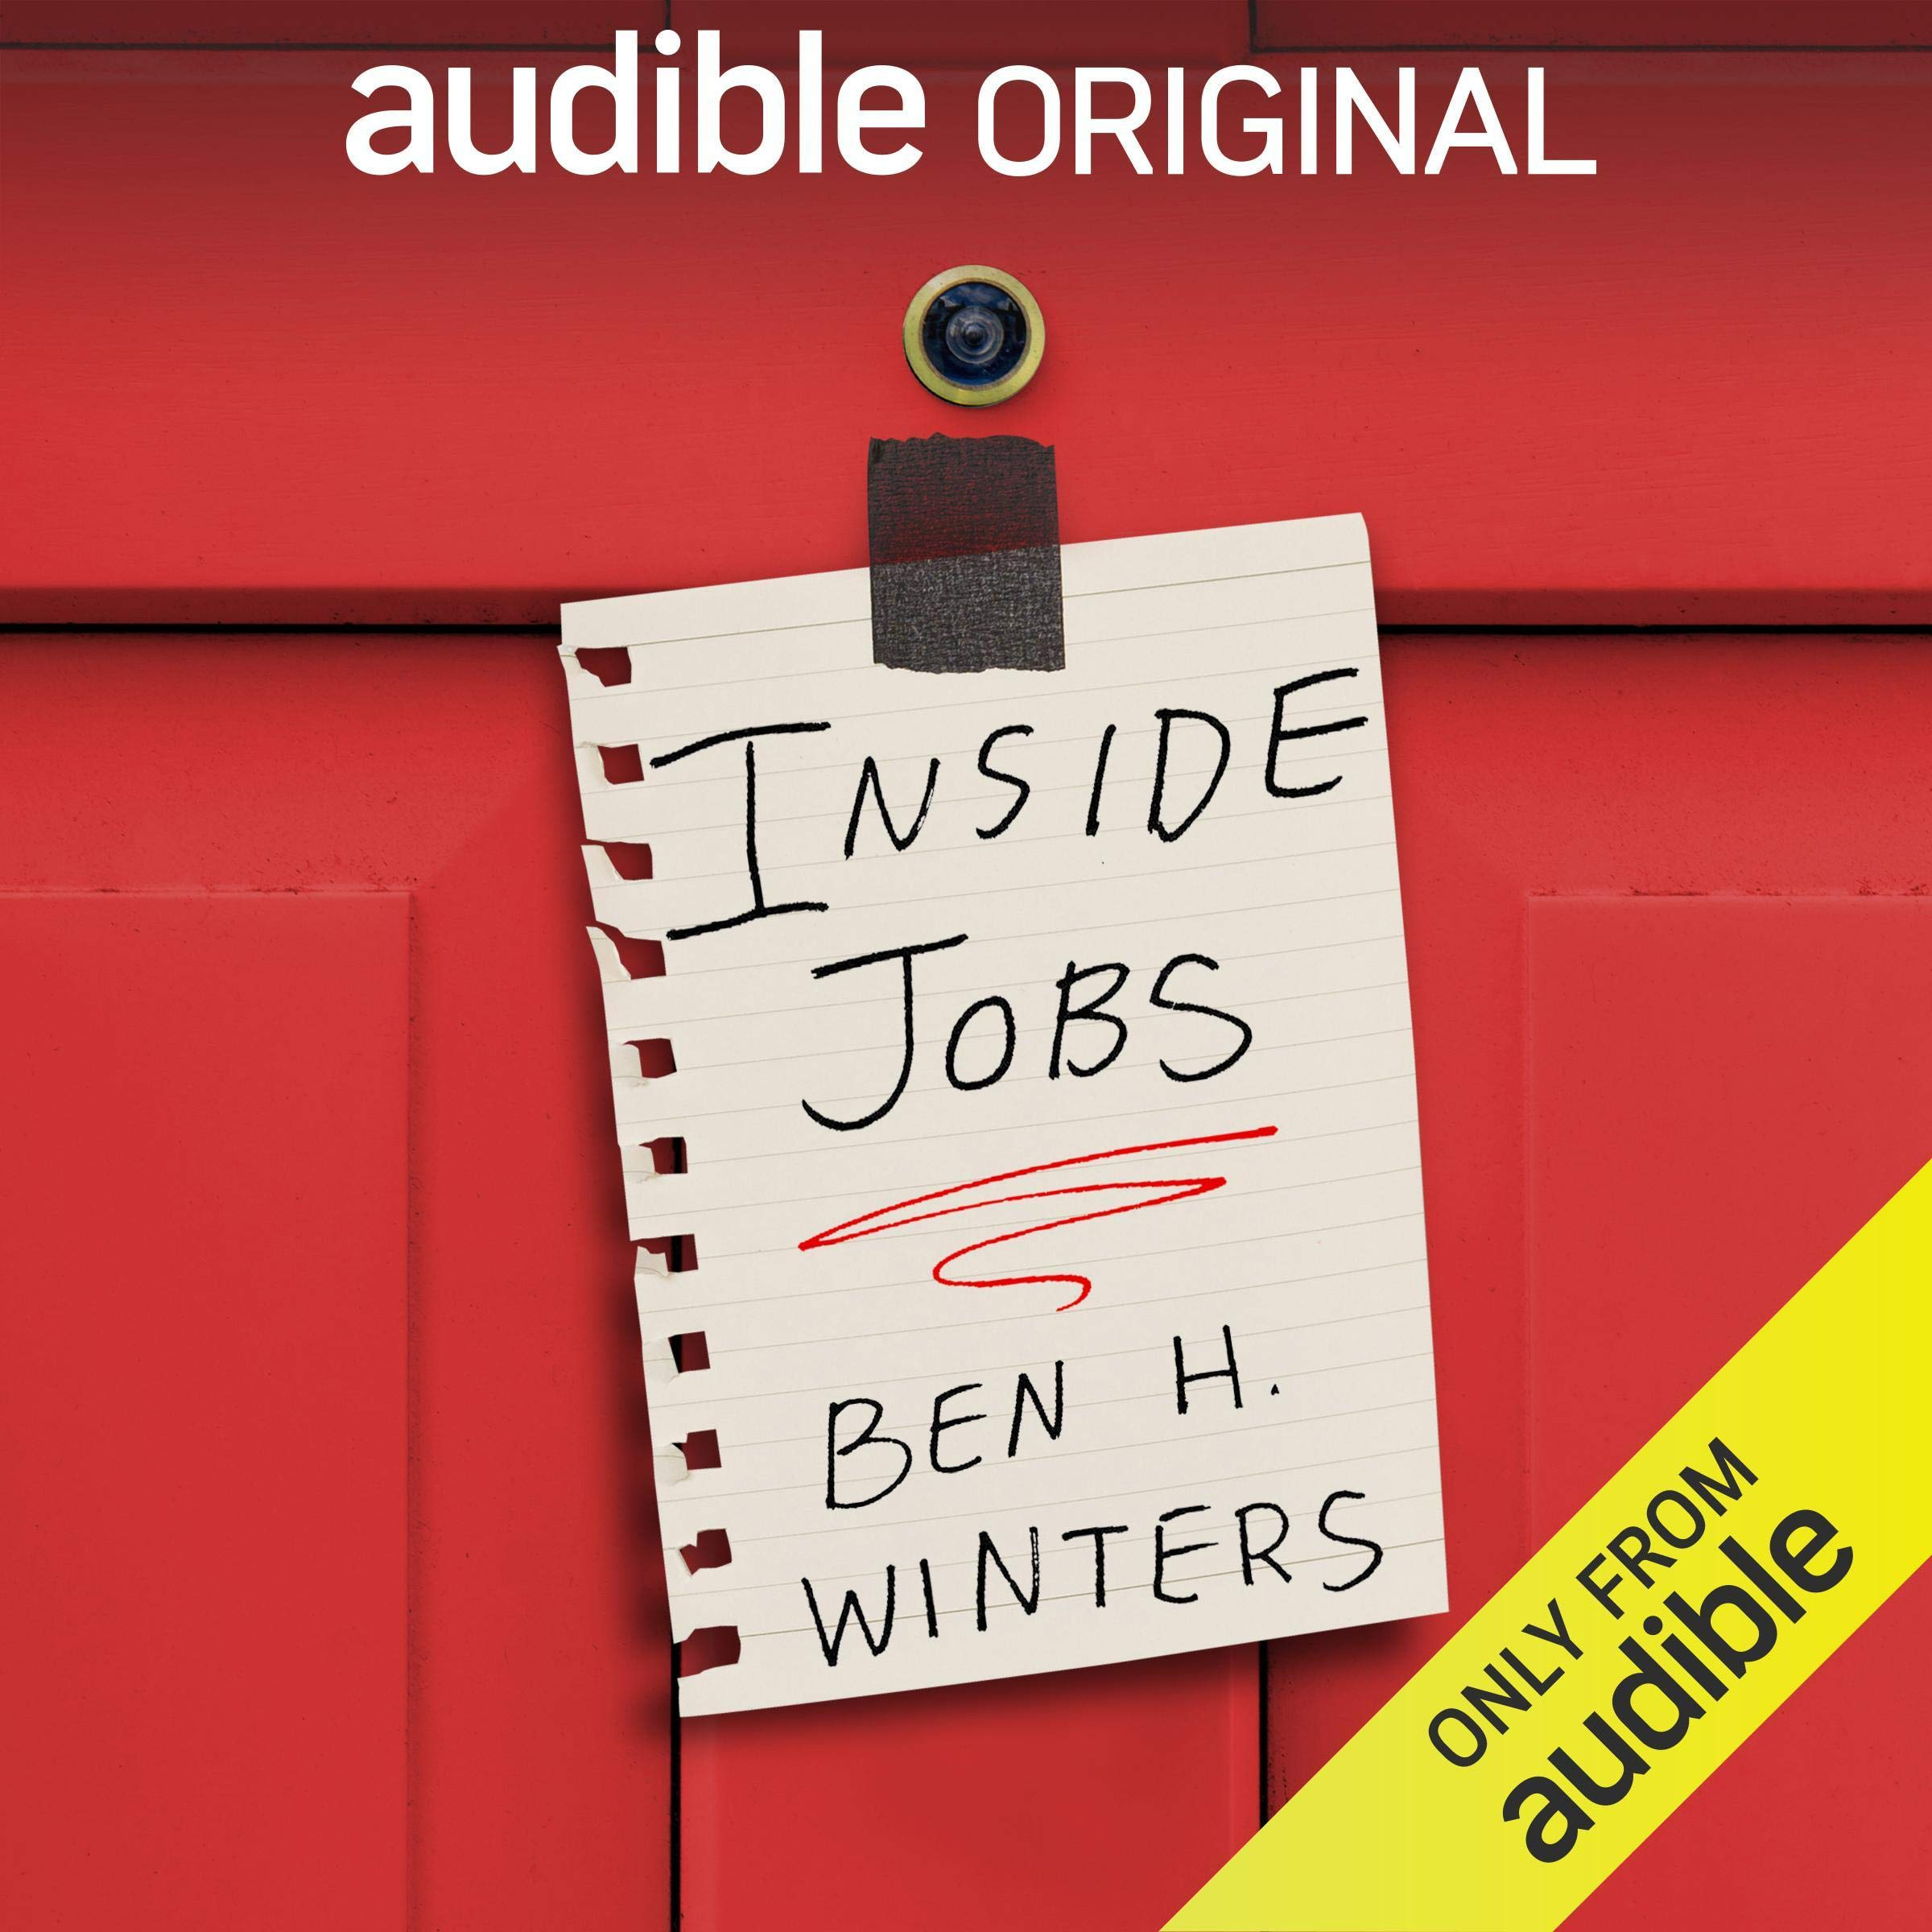 Cover image of Inside Jobs: Tales from a Time of Quarantine by Ben H. Winters